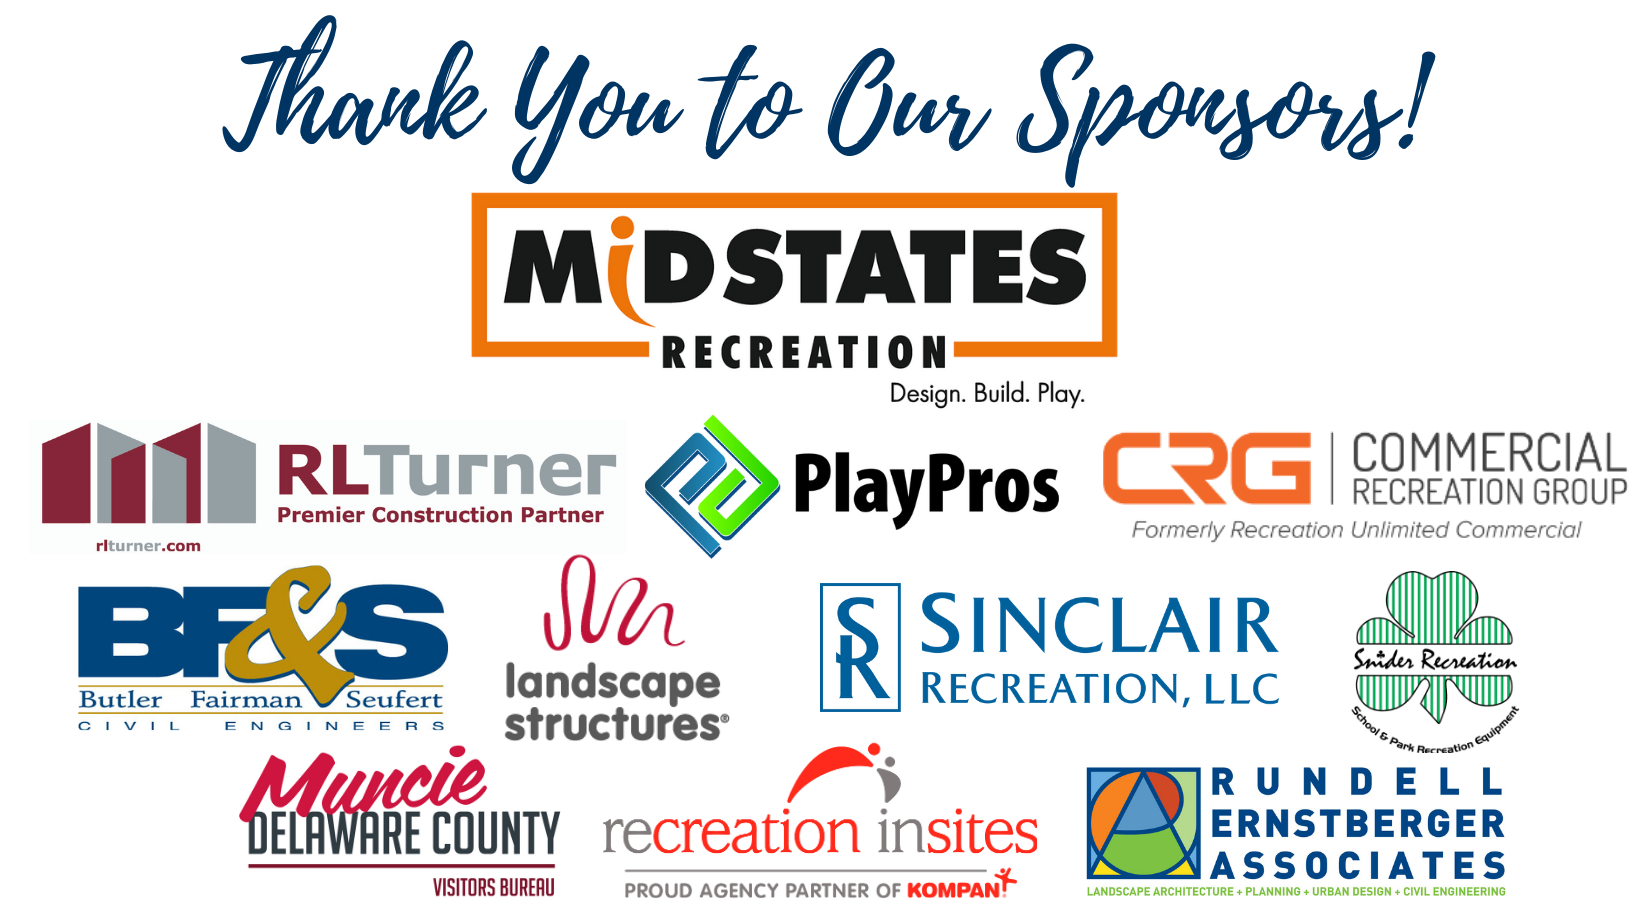 Thank_You_to_Our_Sponsors!_downloaded_5.24.2021.png